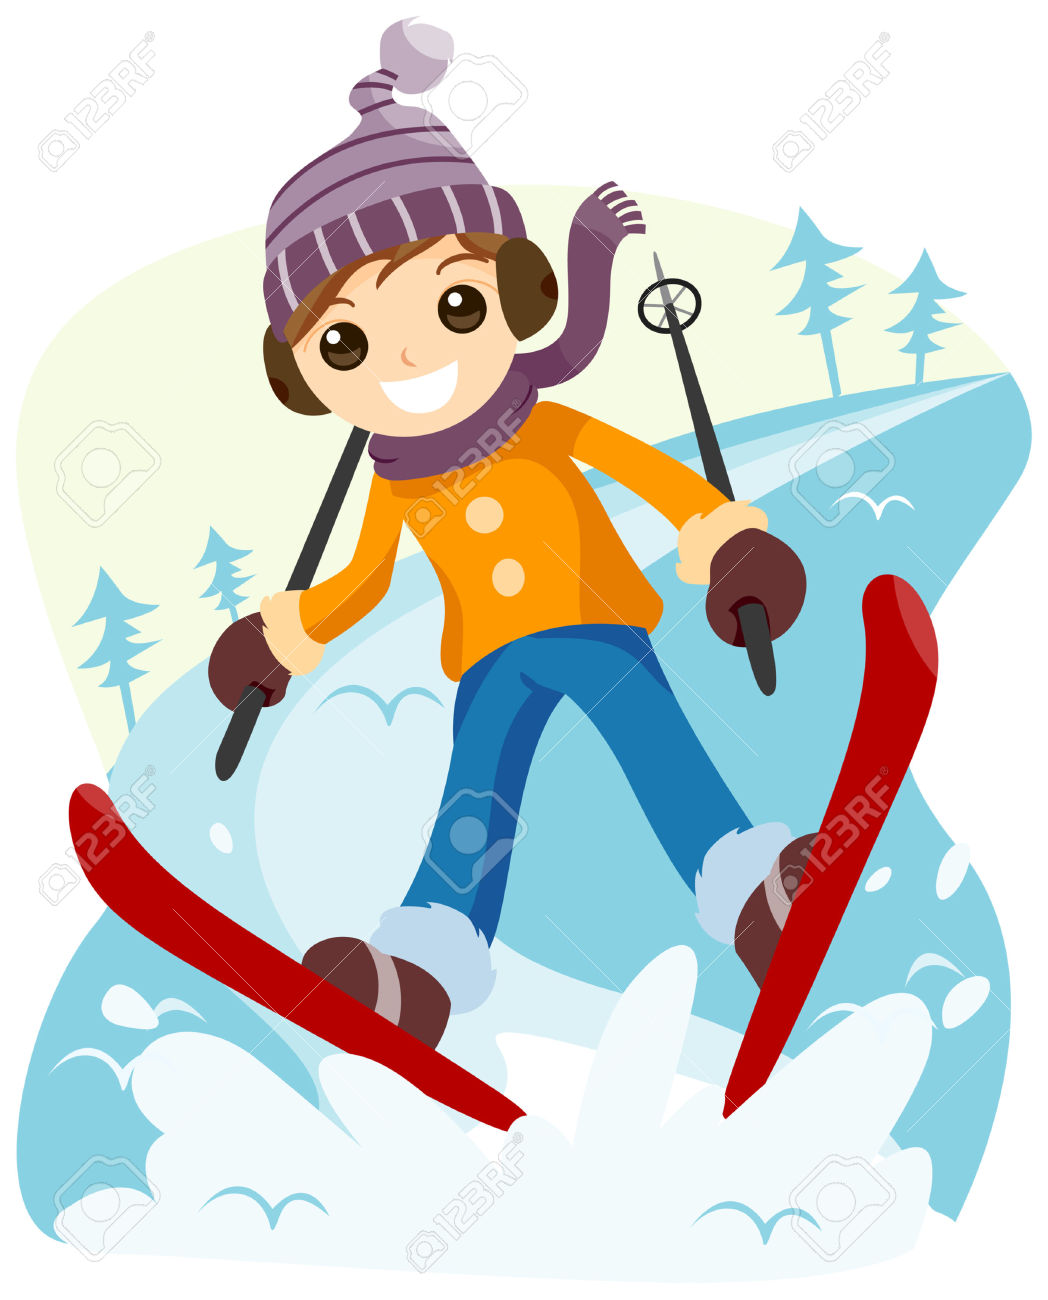 Skiing clipart winter activity Skier clipart  collection Boy